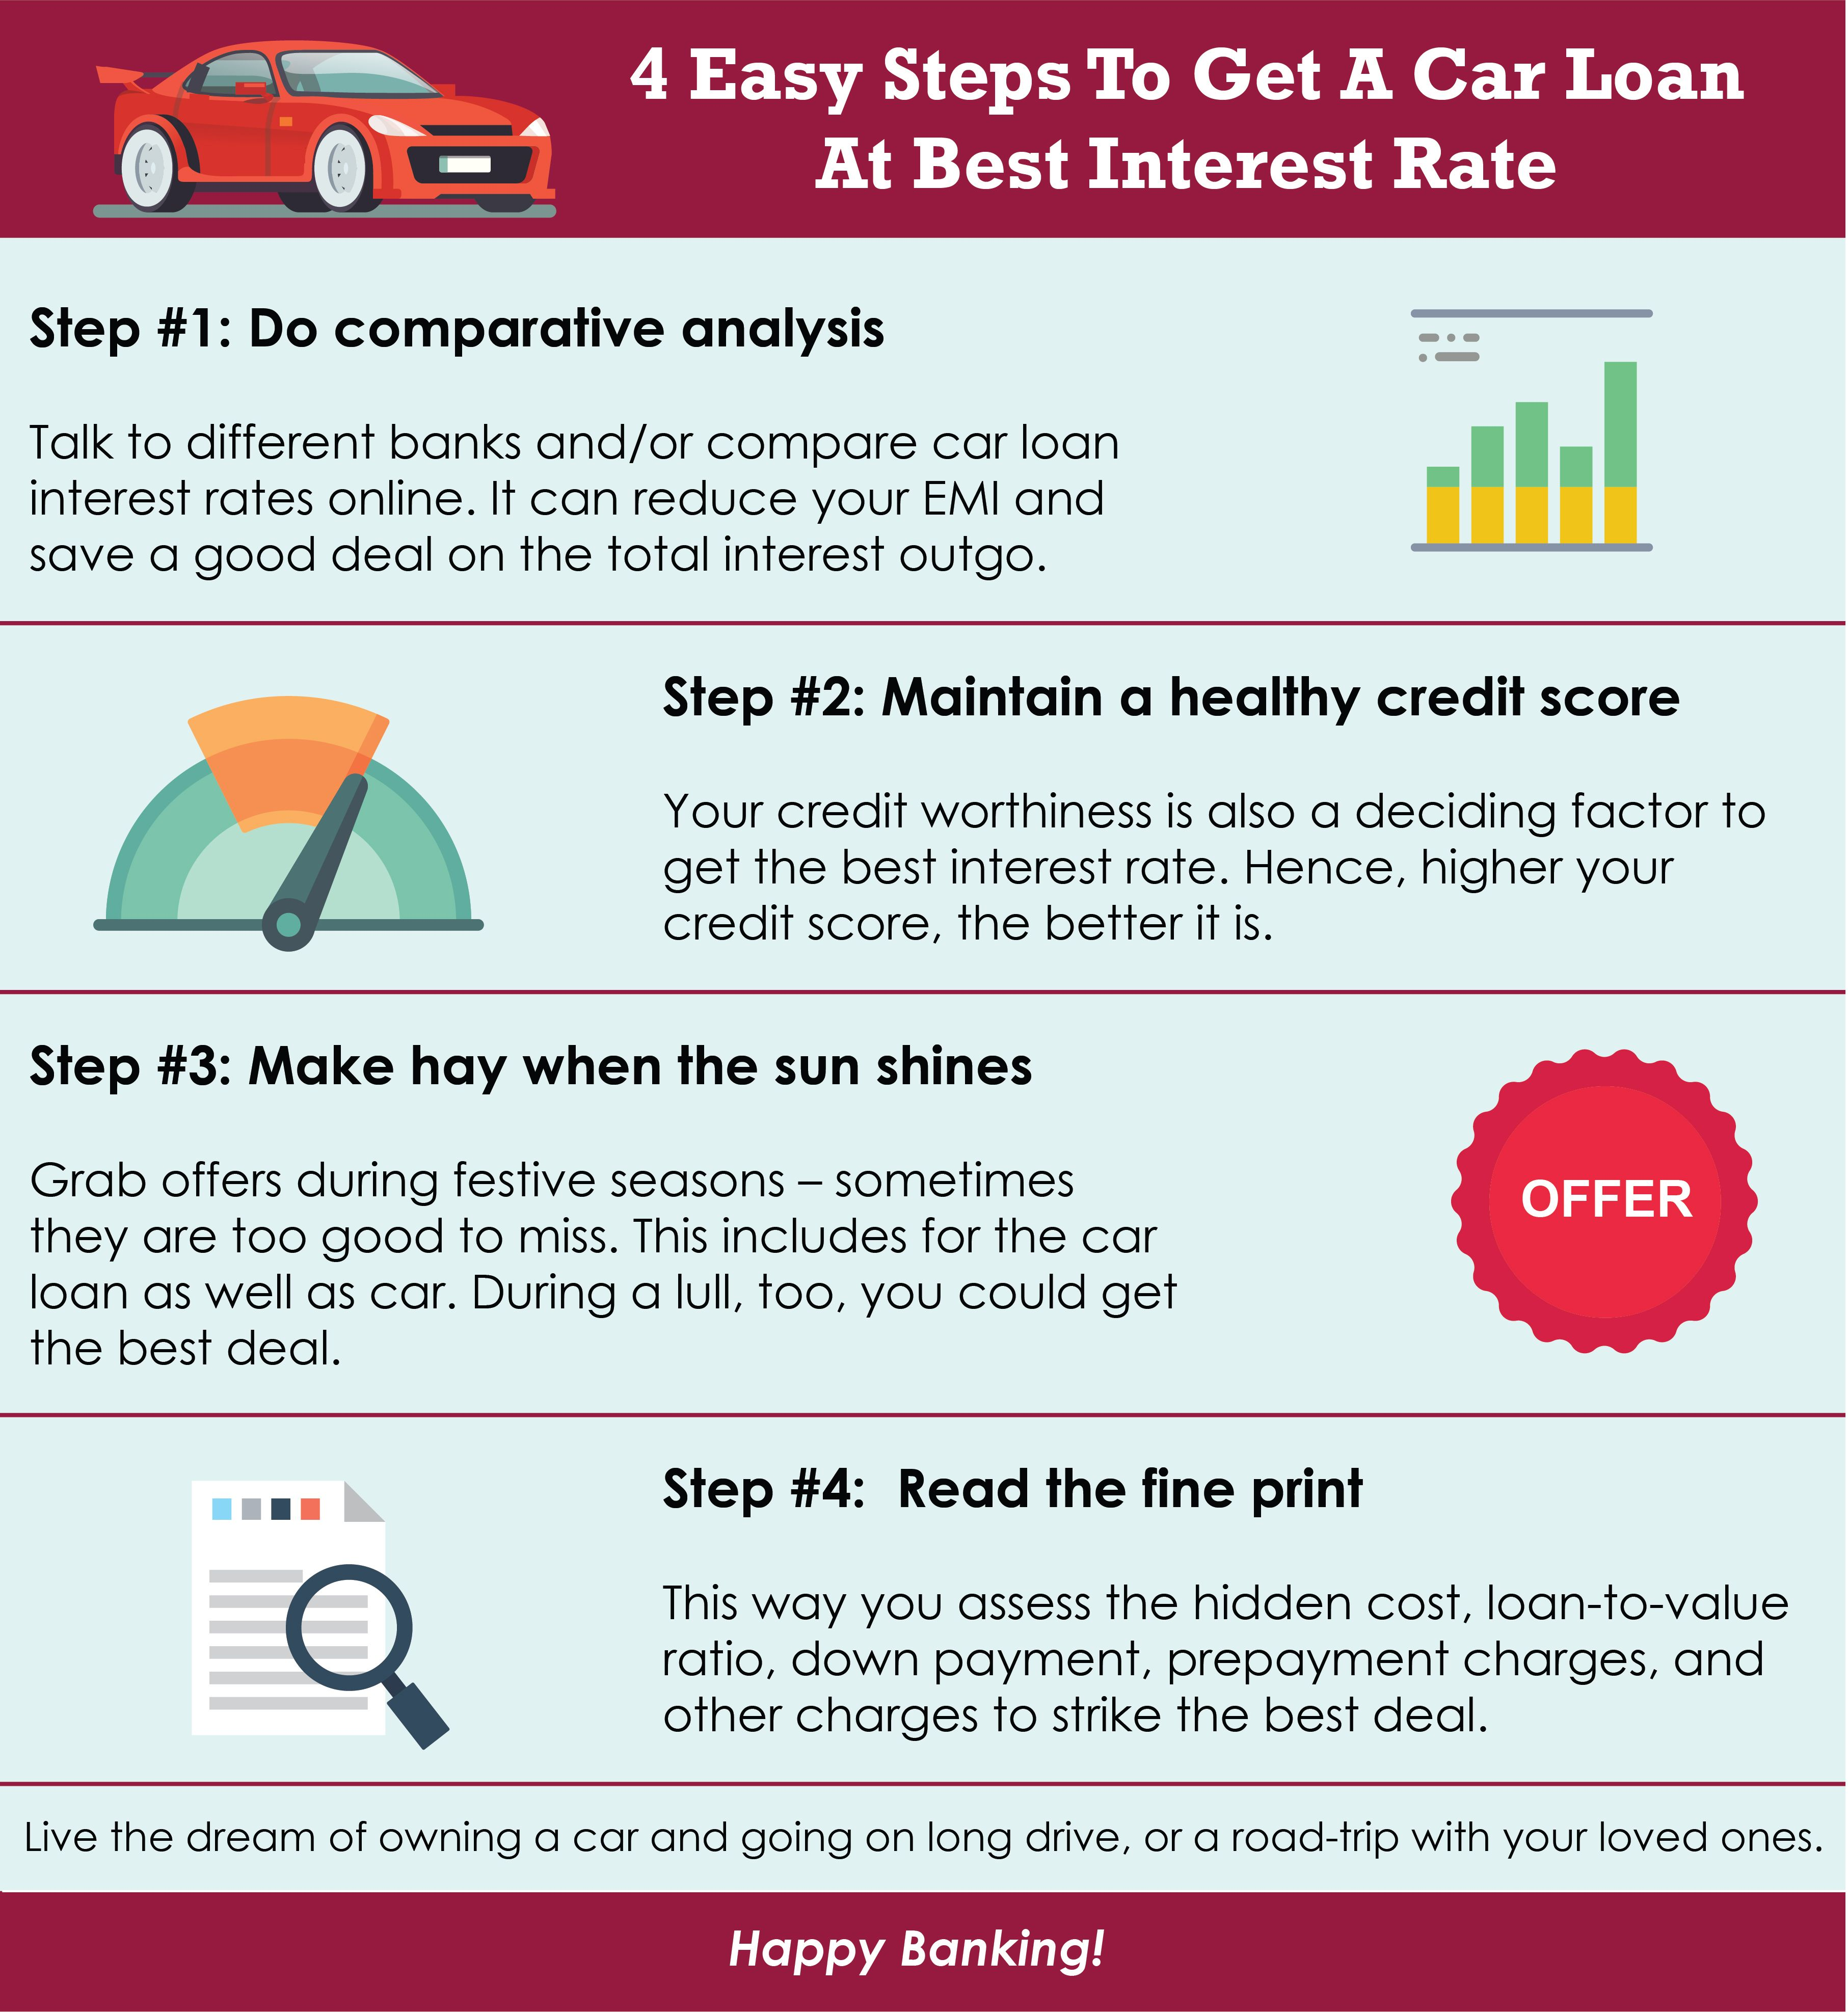 4 Easy Steps To Get A Car Loan At Best Interest Rates Read This Infographic To Know The 4 Easy Steps To Get Aca Car Loan Calculator Car Loans Loan Calculator